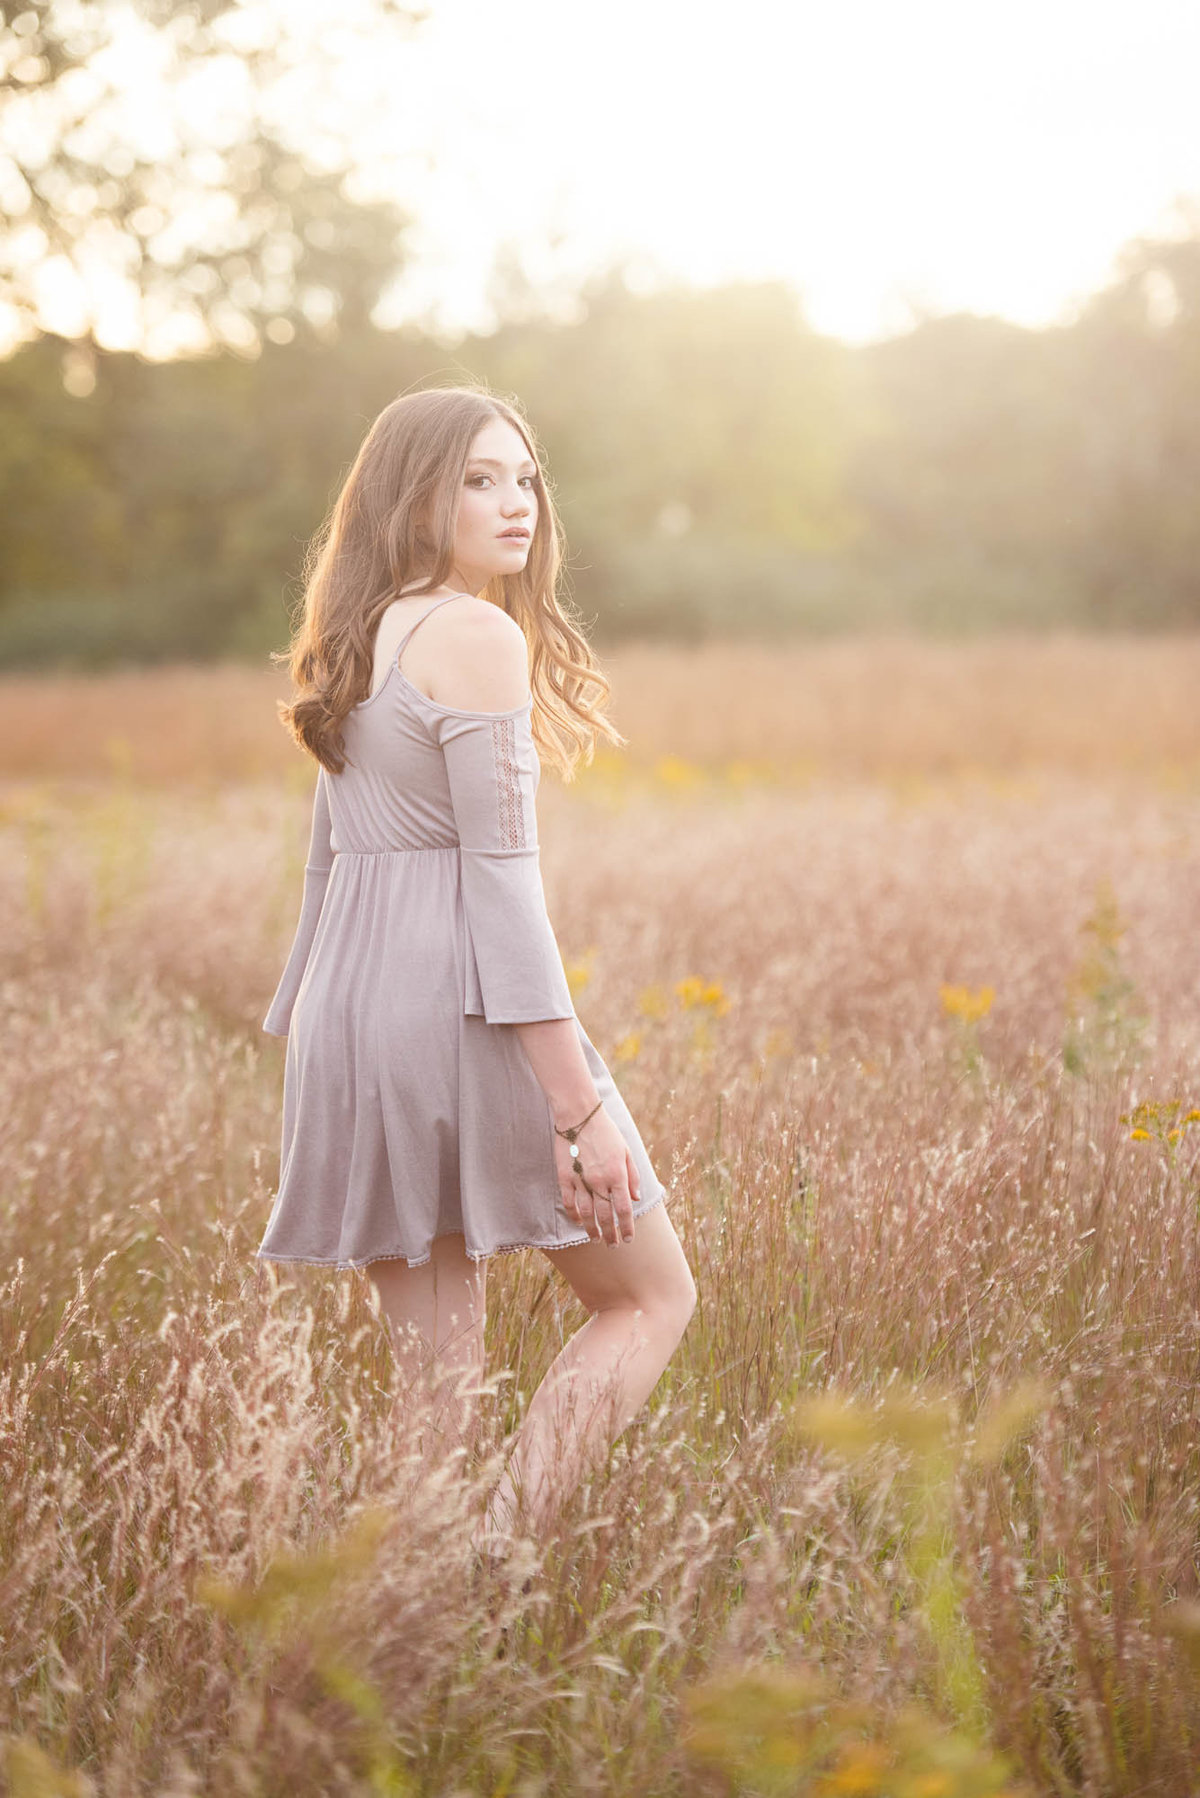 modern senior pictures in field of flowers minnesota photographer3